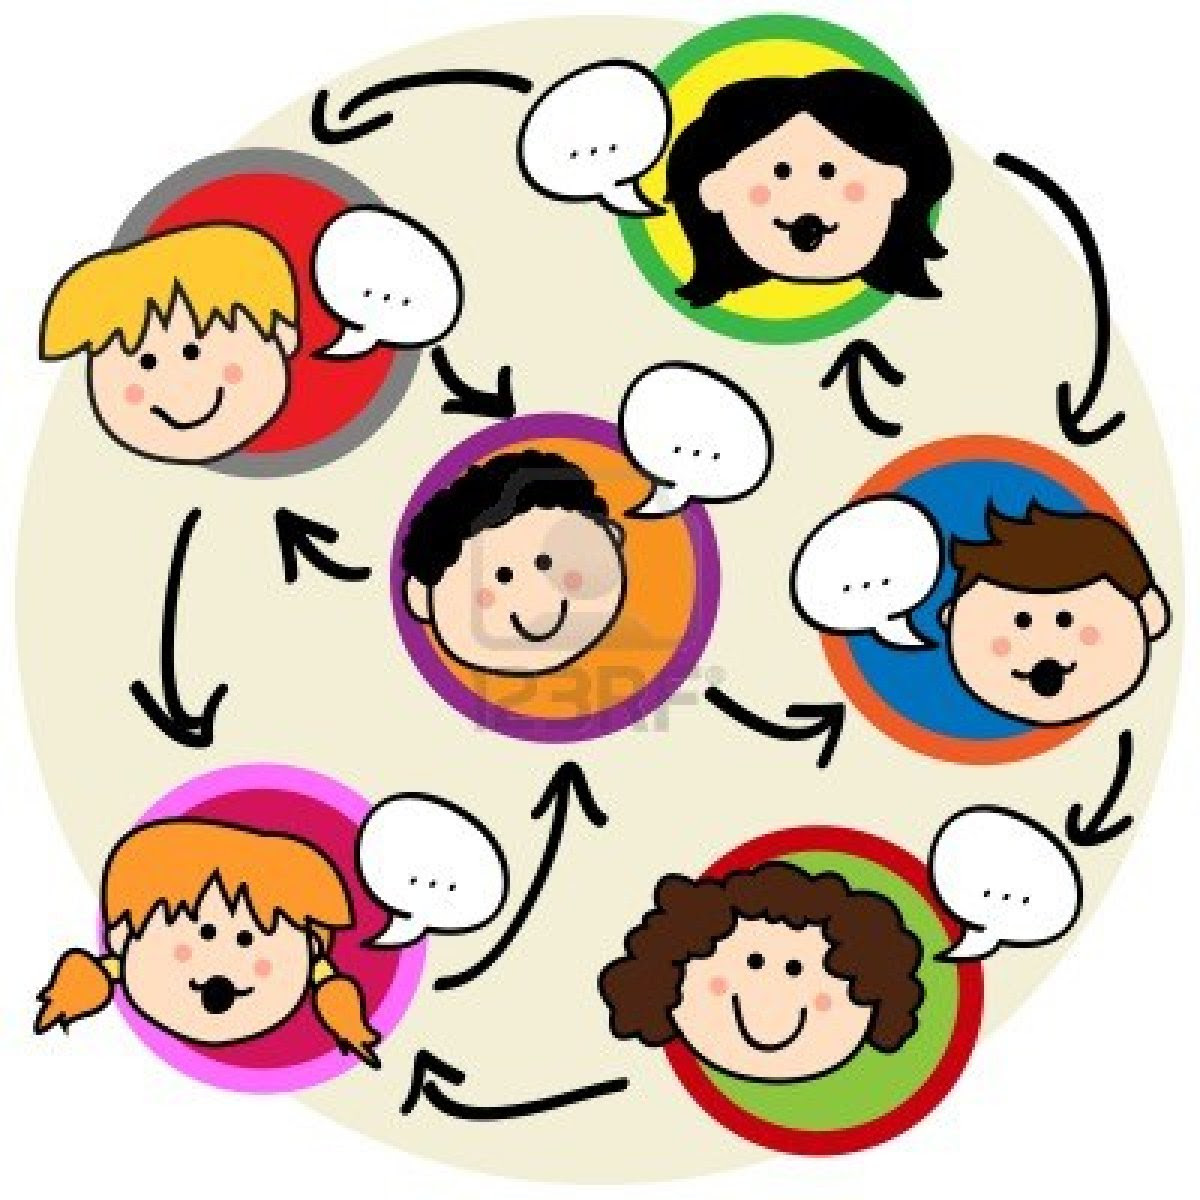 Free Cartoon Pictures Of People Talking Download Free Clip Art